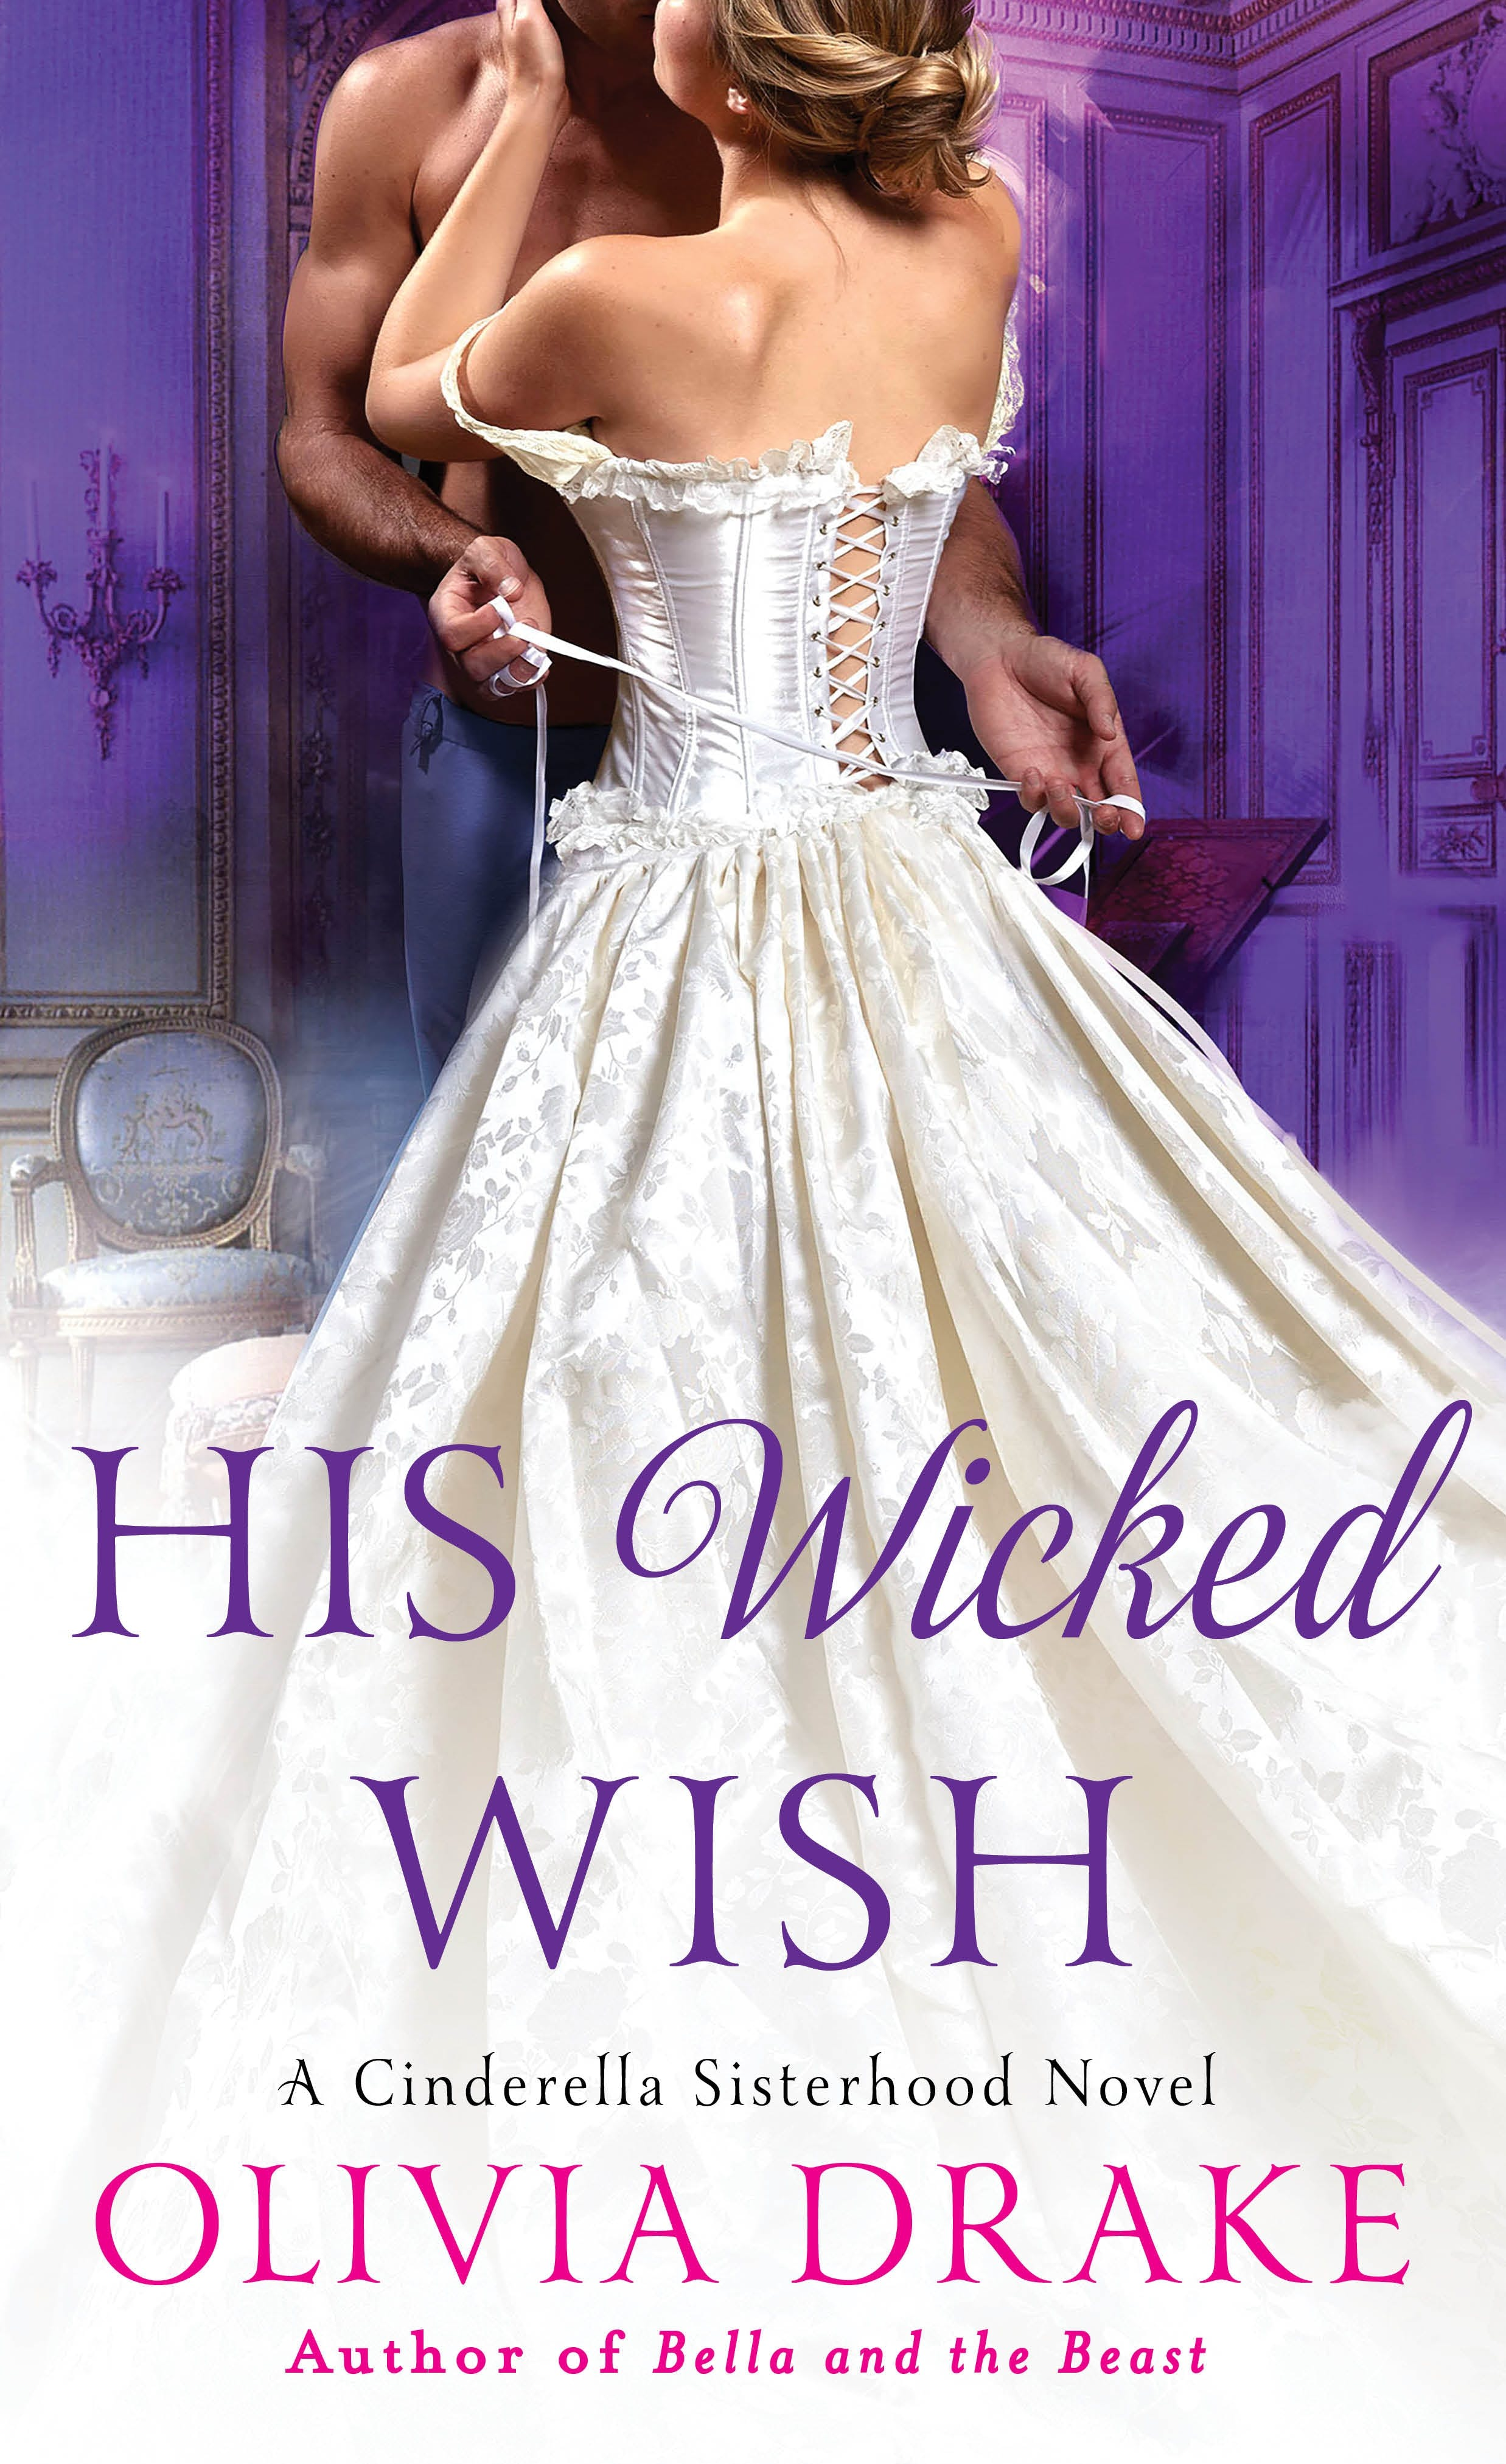 Image of His Wicked Wish